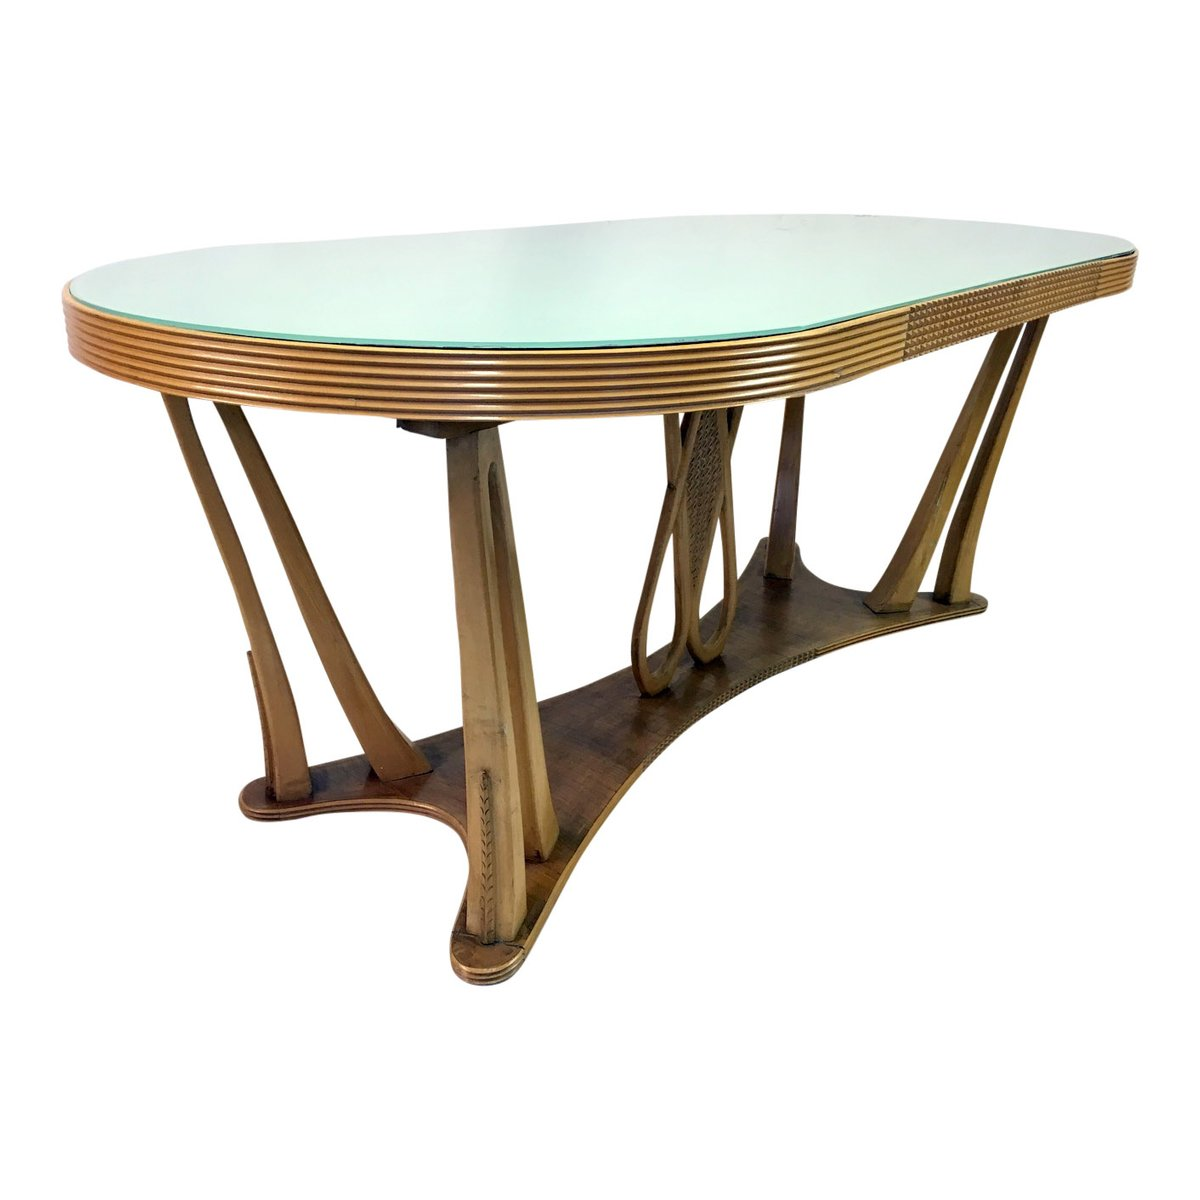 Glass Kitchen Tables For Sale: Vintage Italian Dining Table With Glass Top, 1940s For